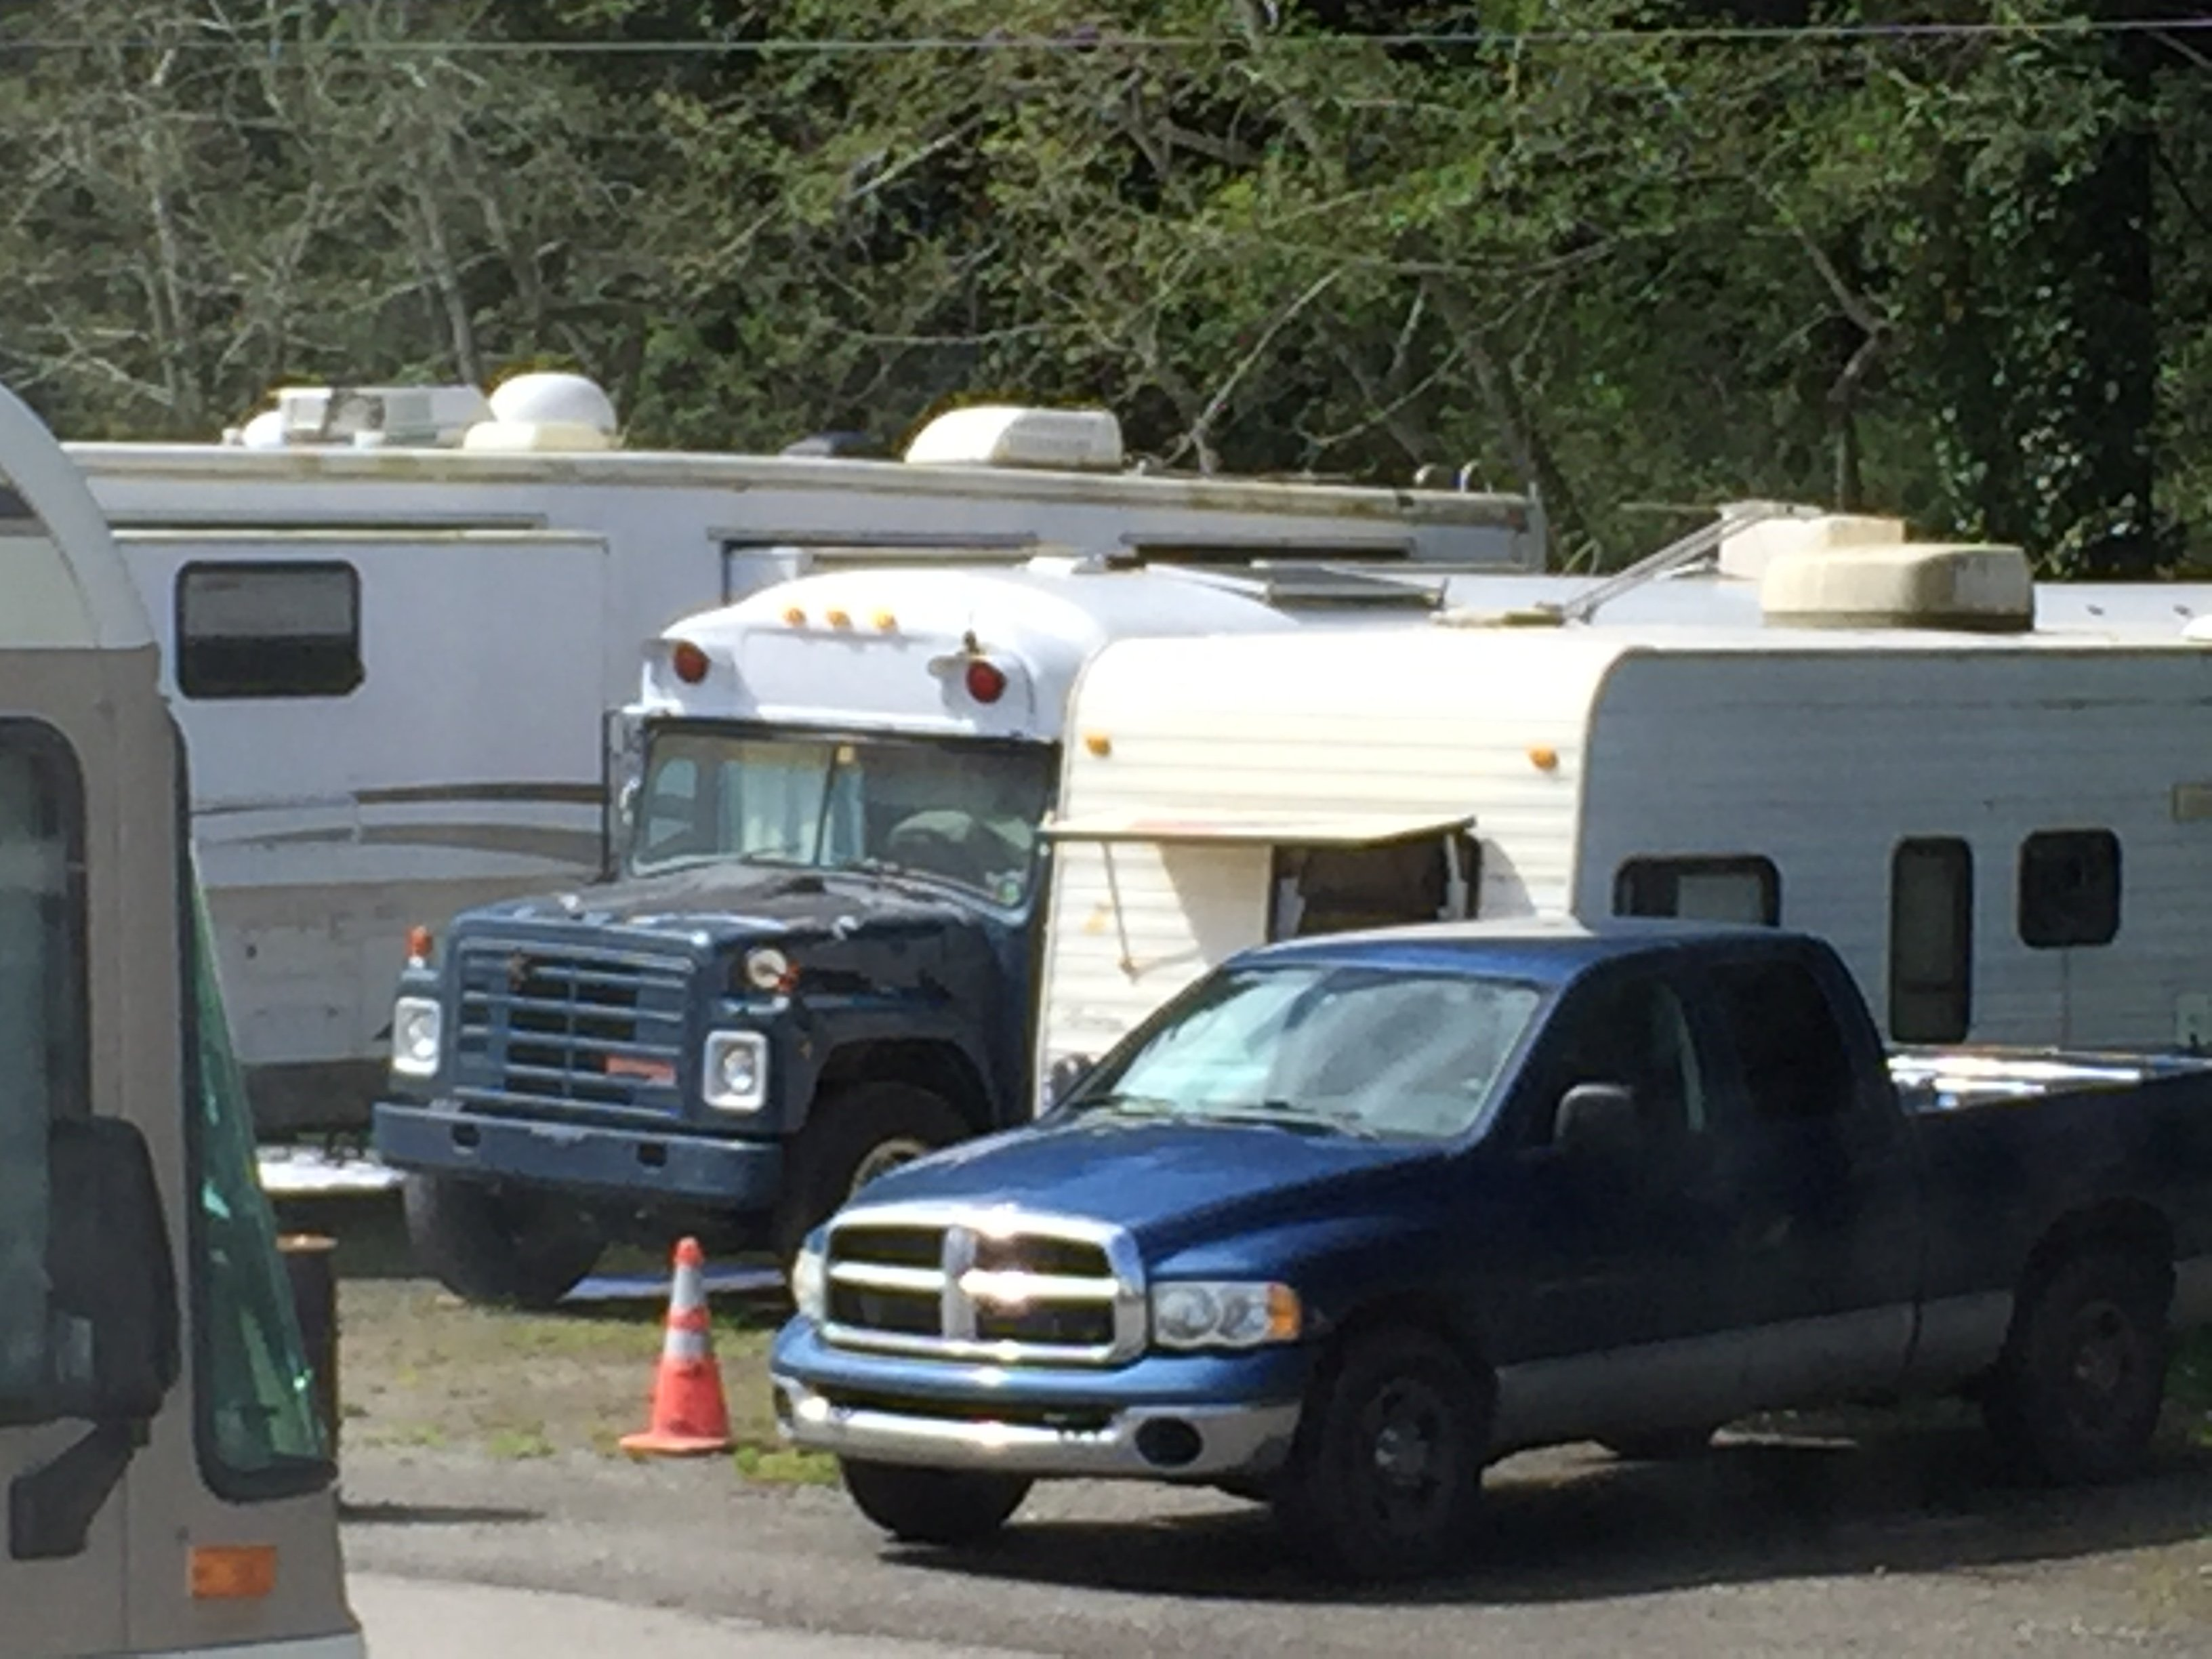 West Coast RV parking shortage